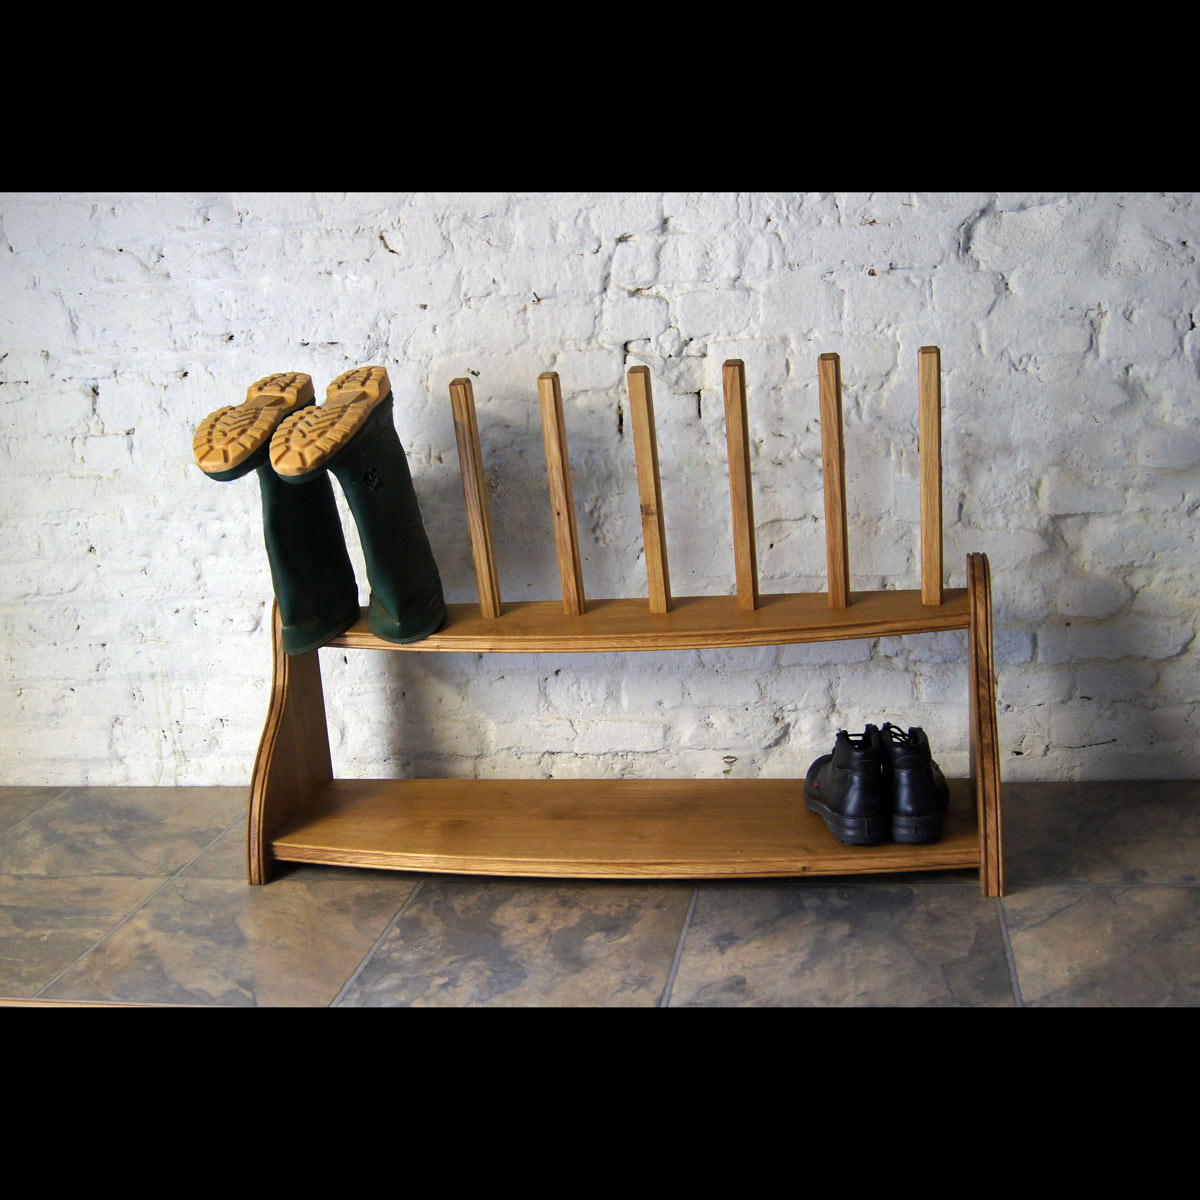 Wellington boots rack